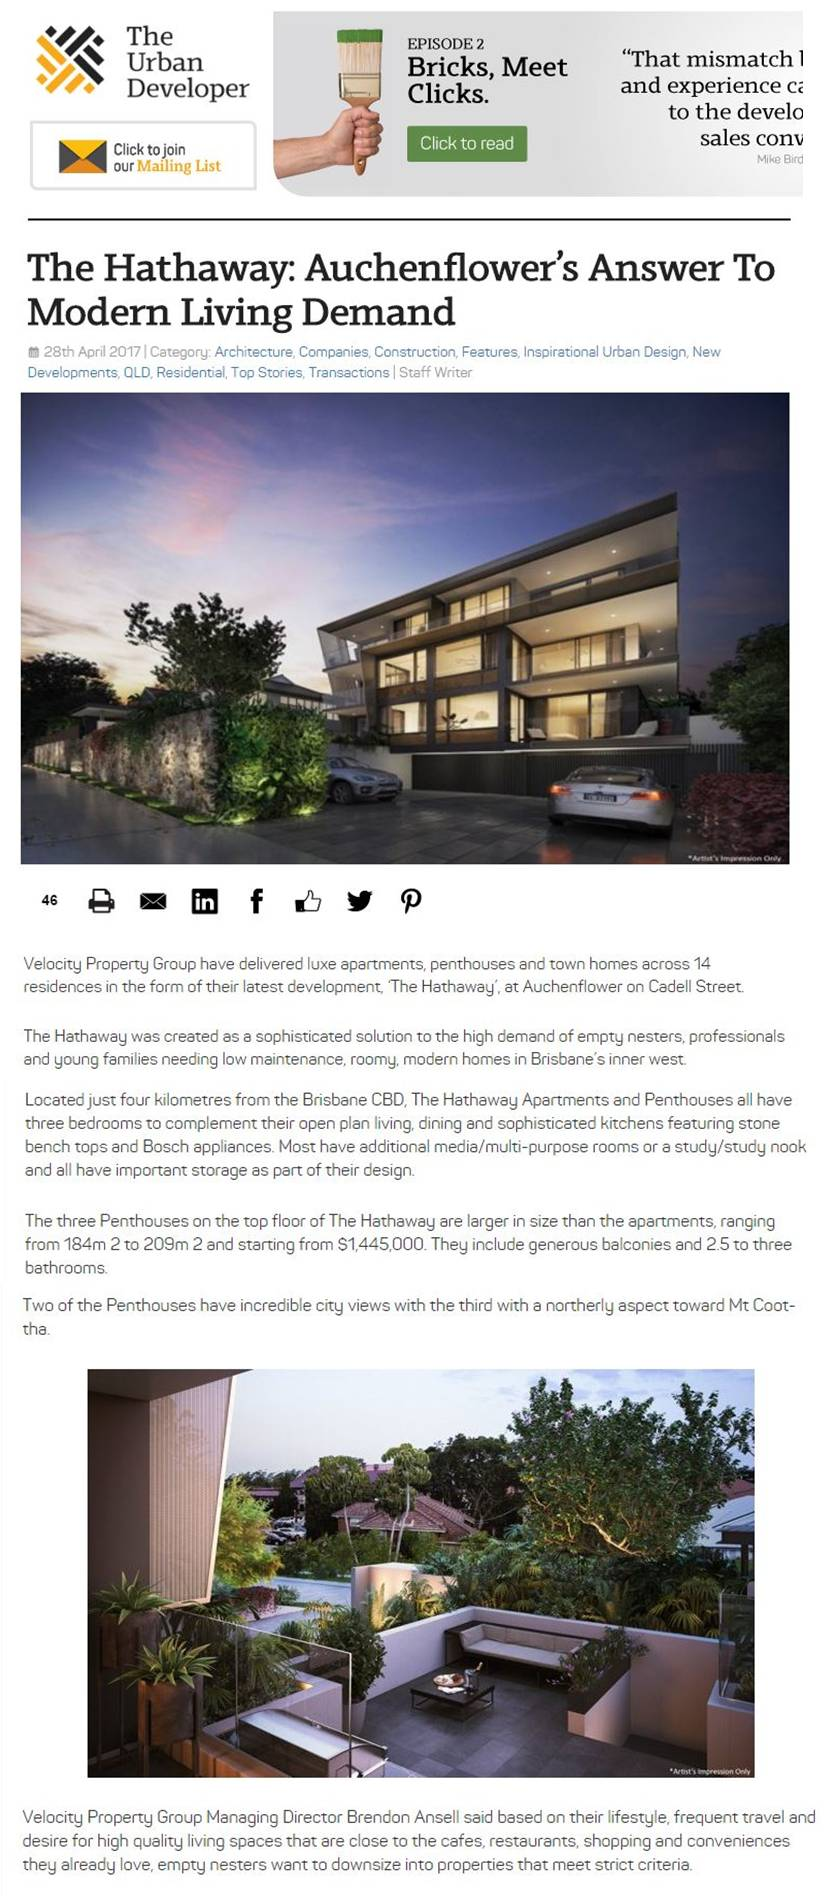 Pt 1The Urban Developer The Hathaway article 1 May 2017